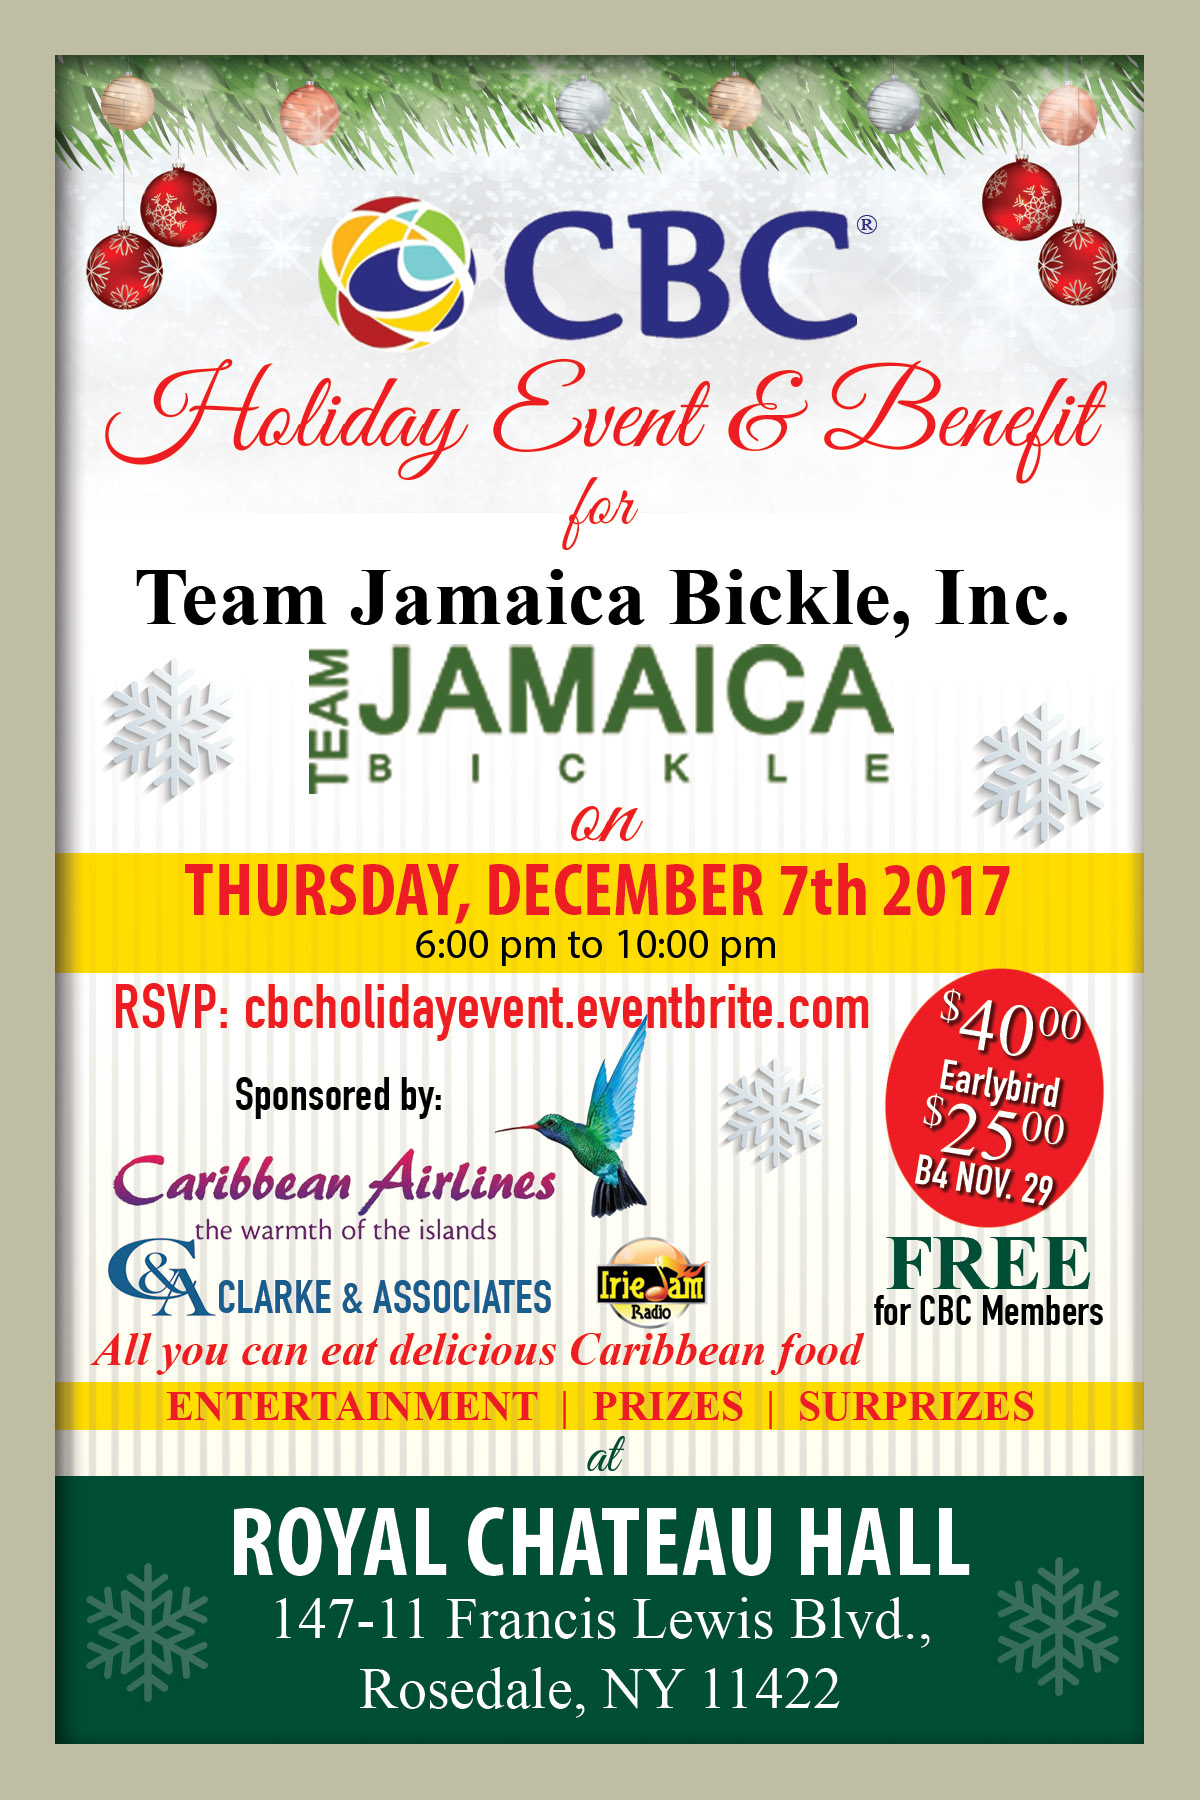 CBC Holiday Event & Benefit for Team Jamaica Bickle Thur Dec 7th | CBC